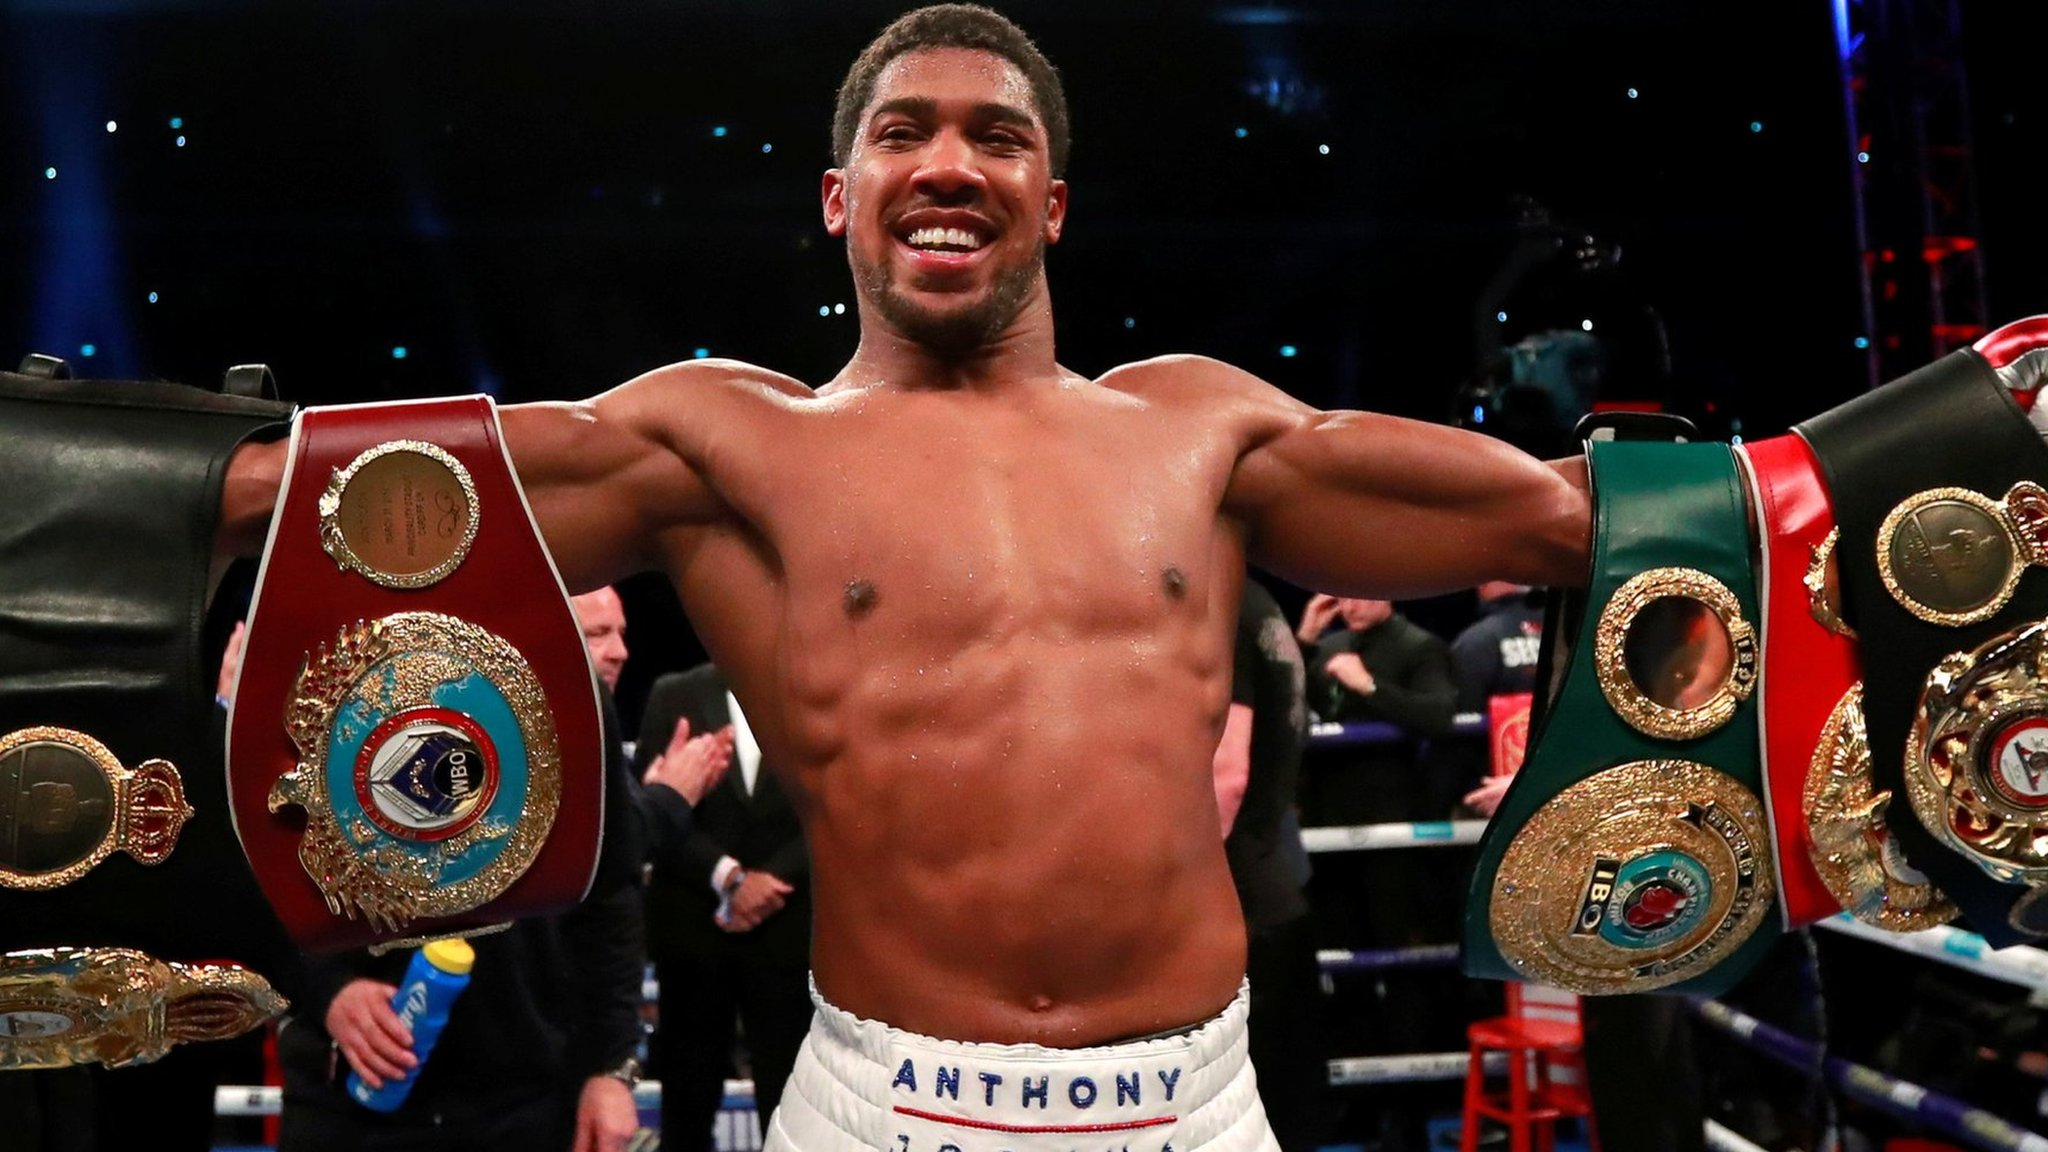 Anthony Joshua stops Alexander Povetkin to retain world heavyweight titles